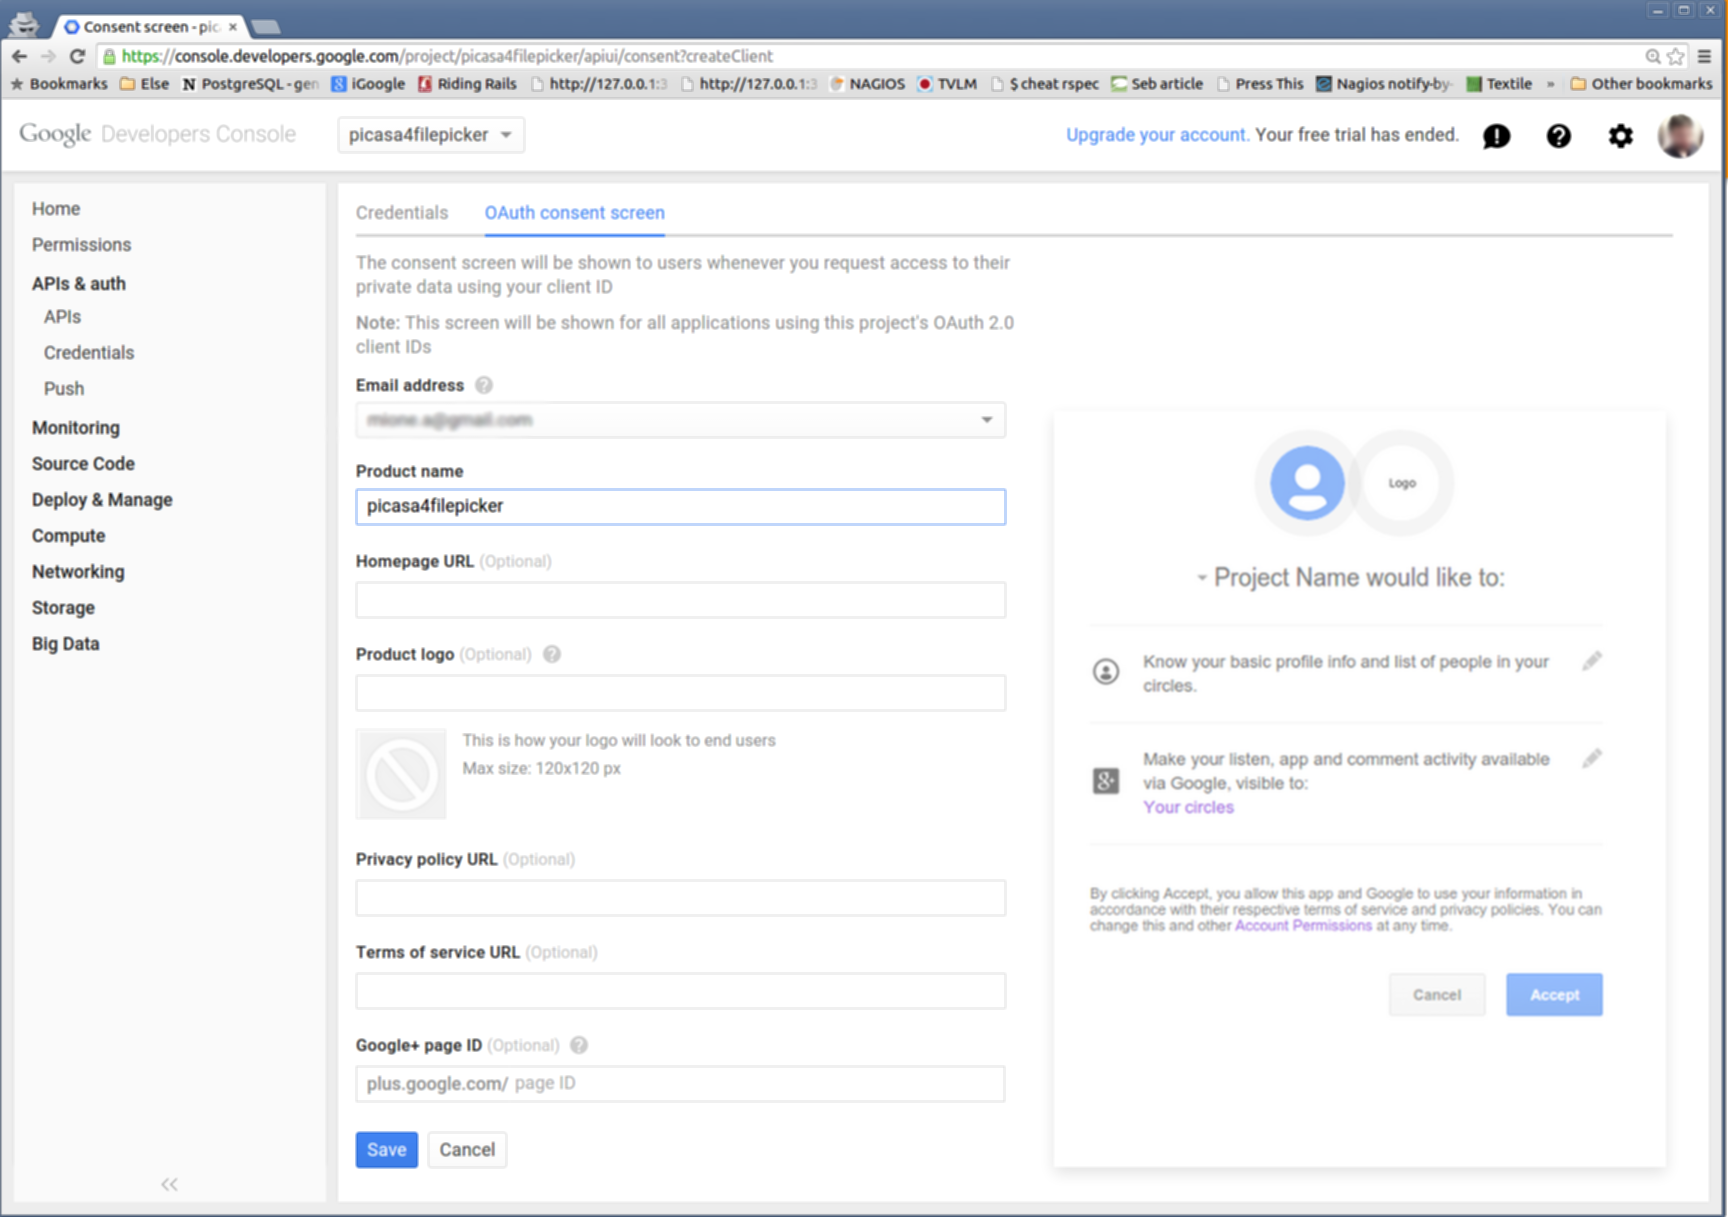 Configure the consent screen for the Picasa application